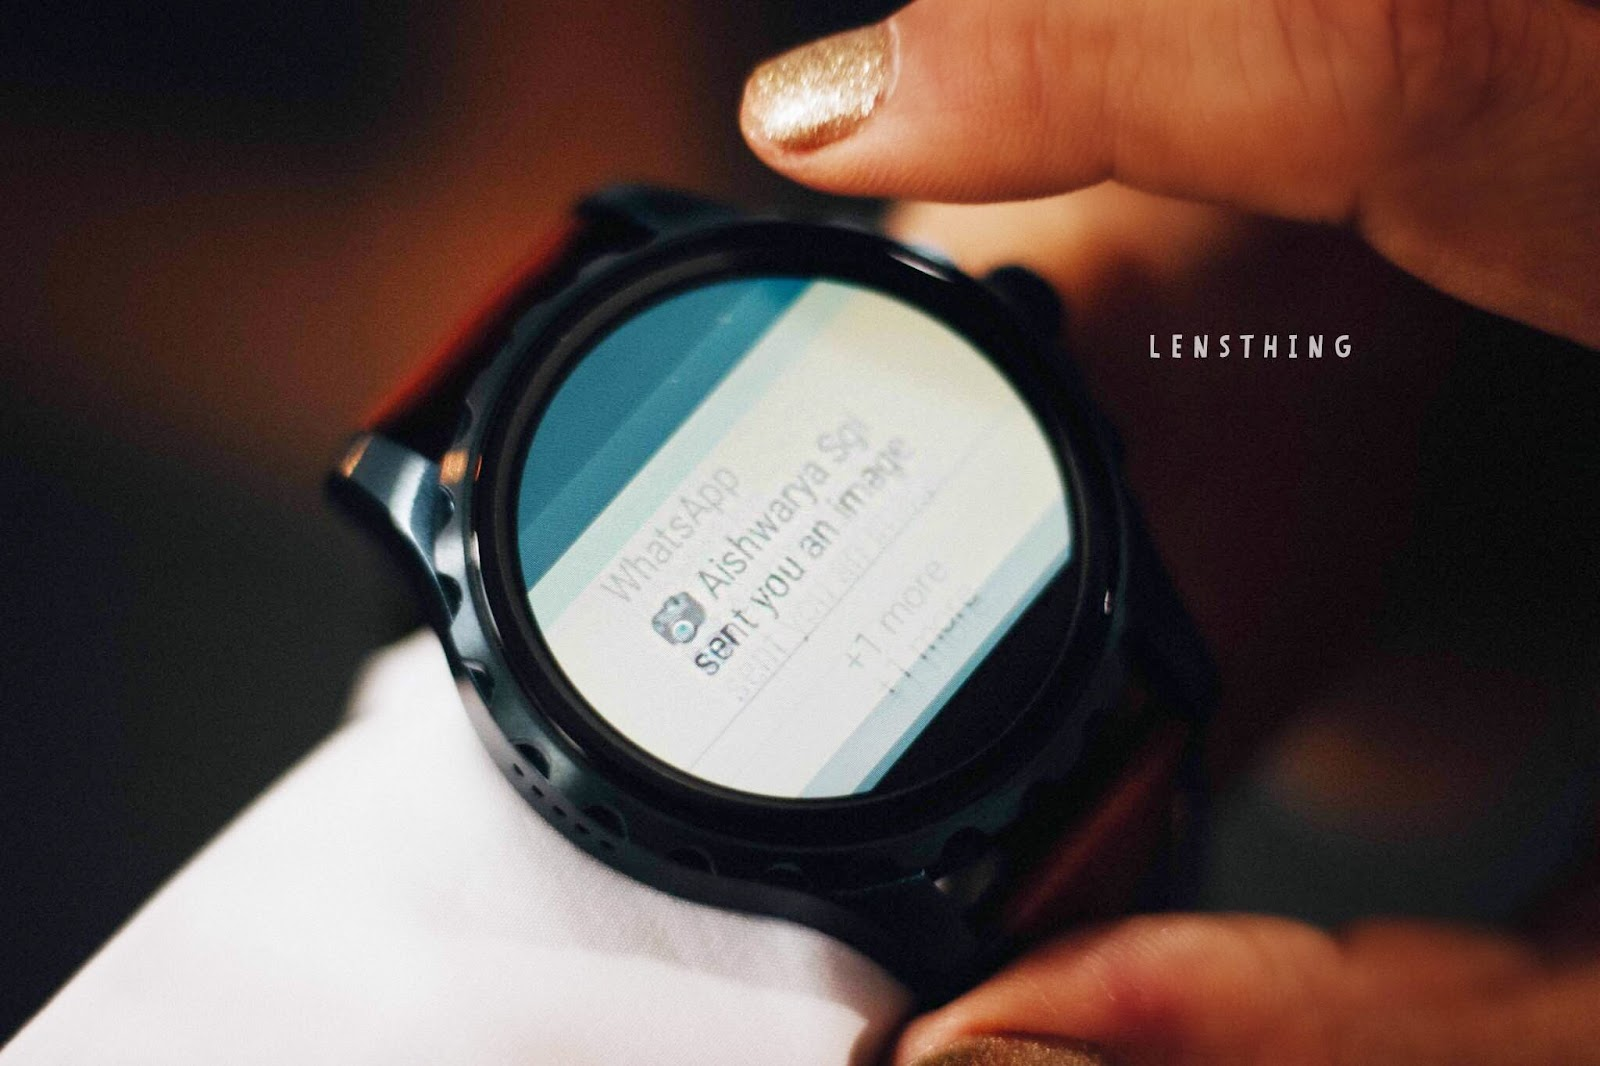 Fossil Q Founder Touchscreen Stainless Steel Smartwatch - Fossil